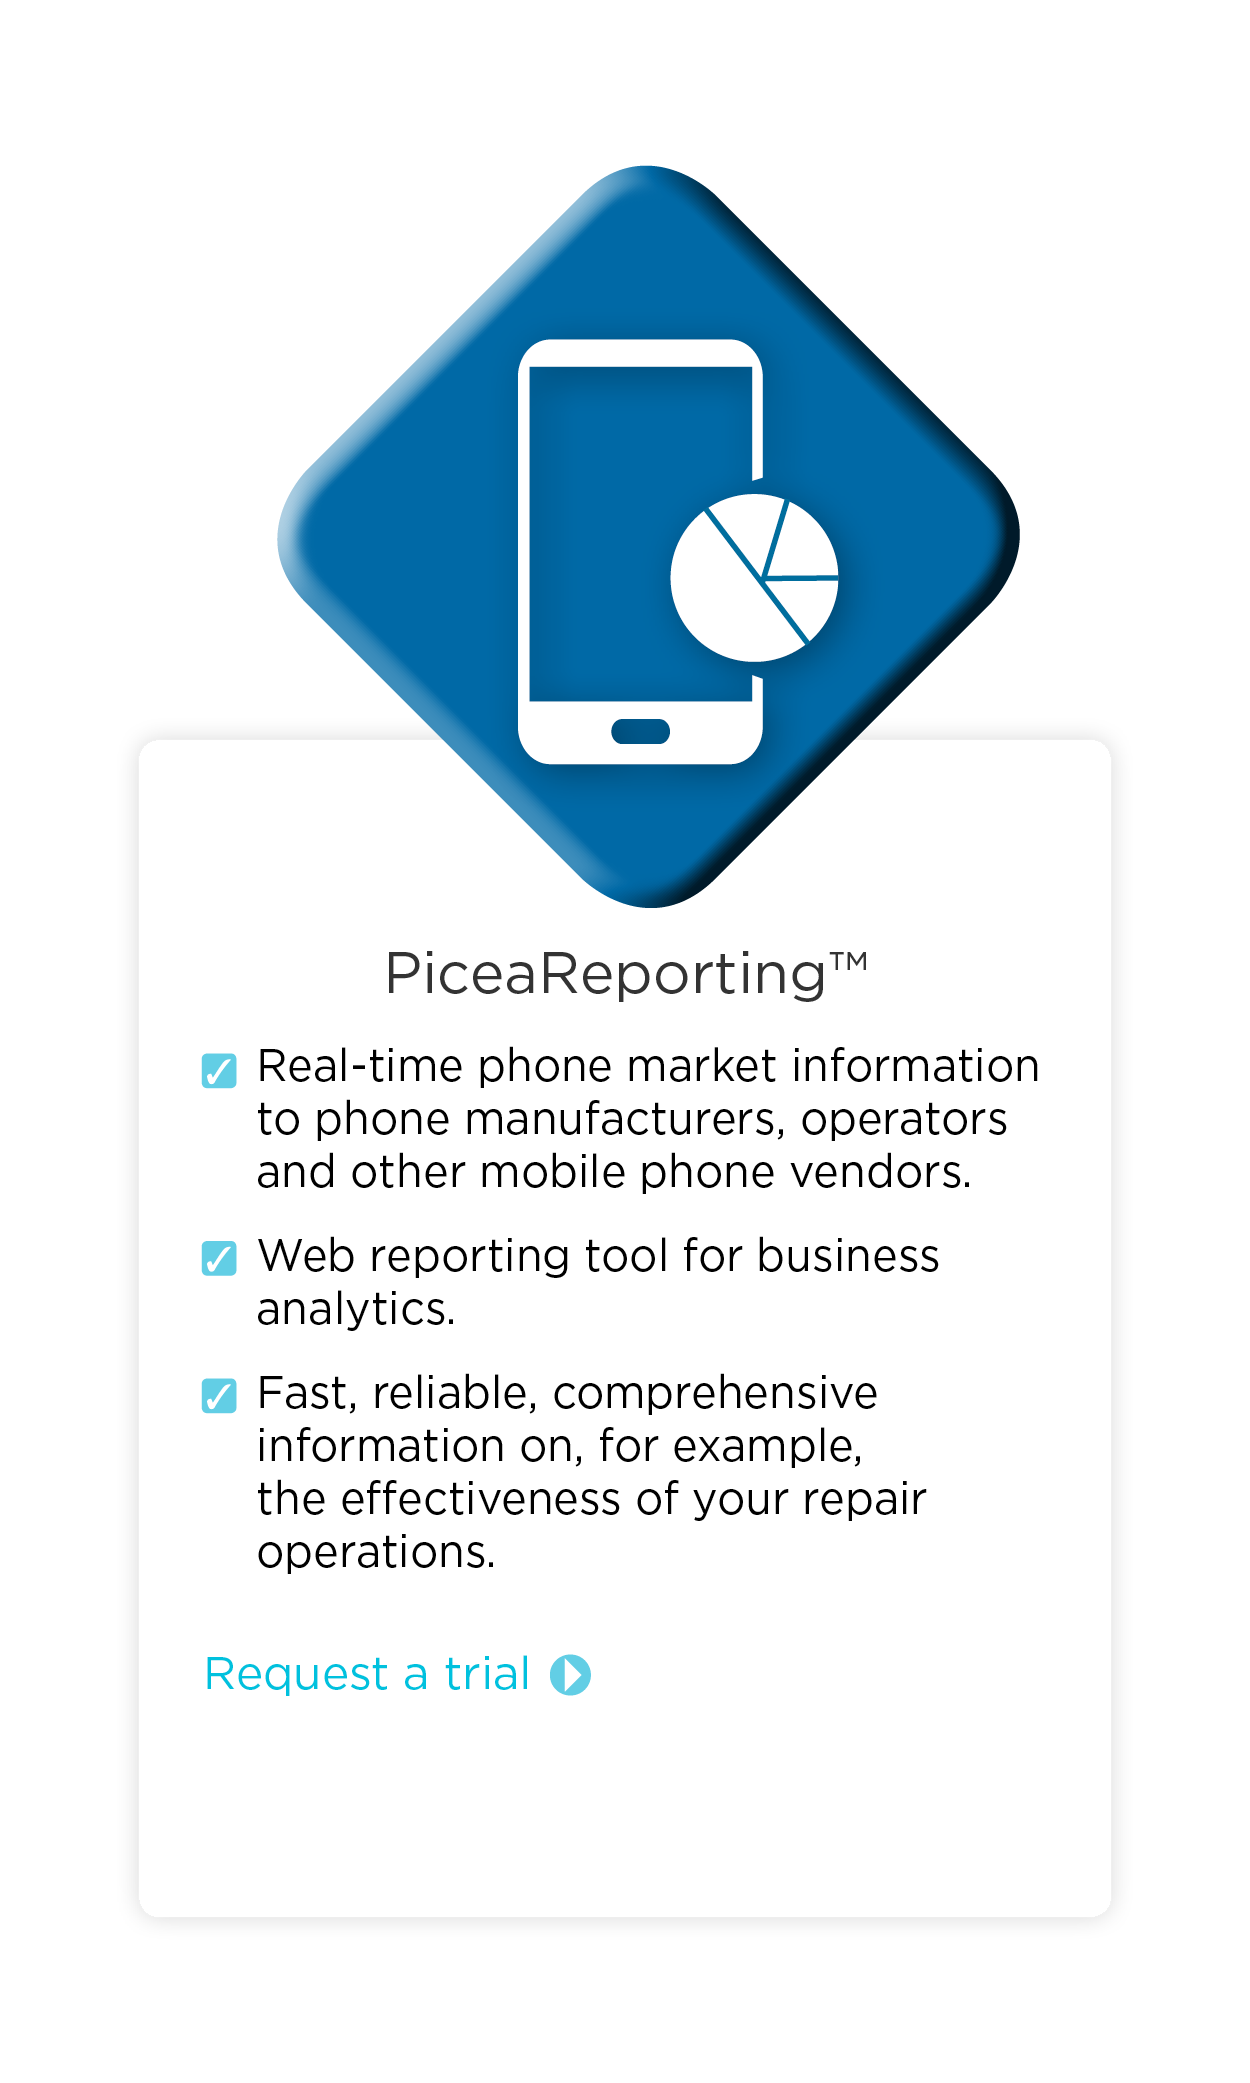 PiceaReporting